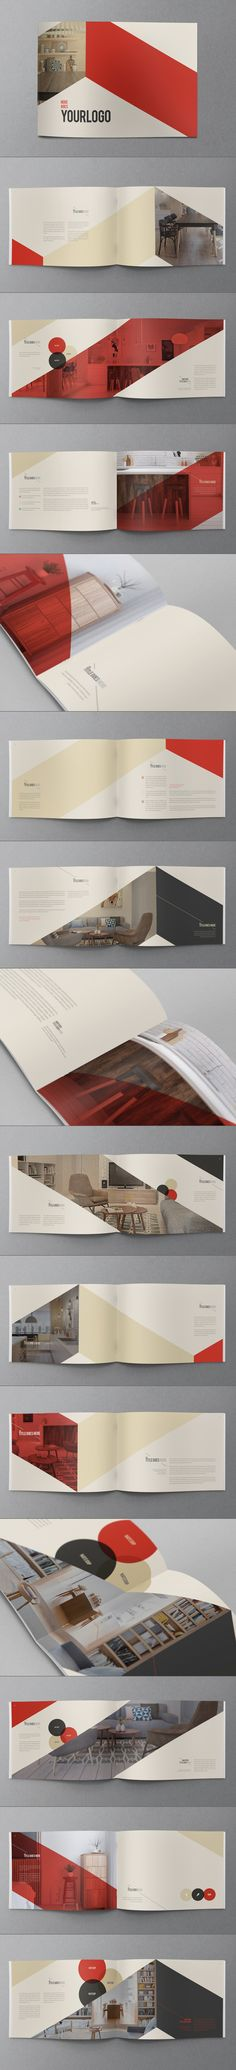 Retro Vintage Brochure on Behance